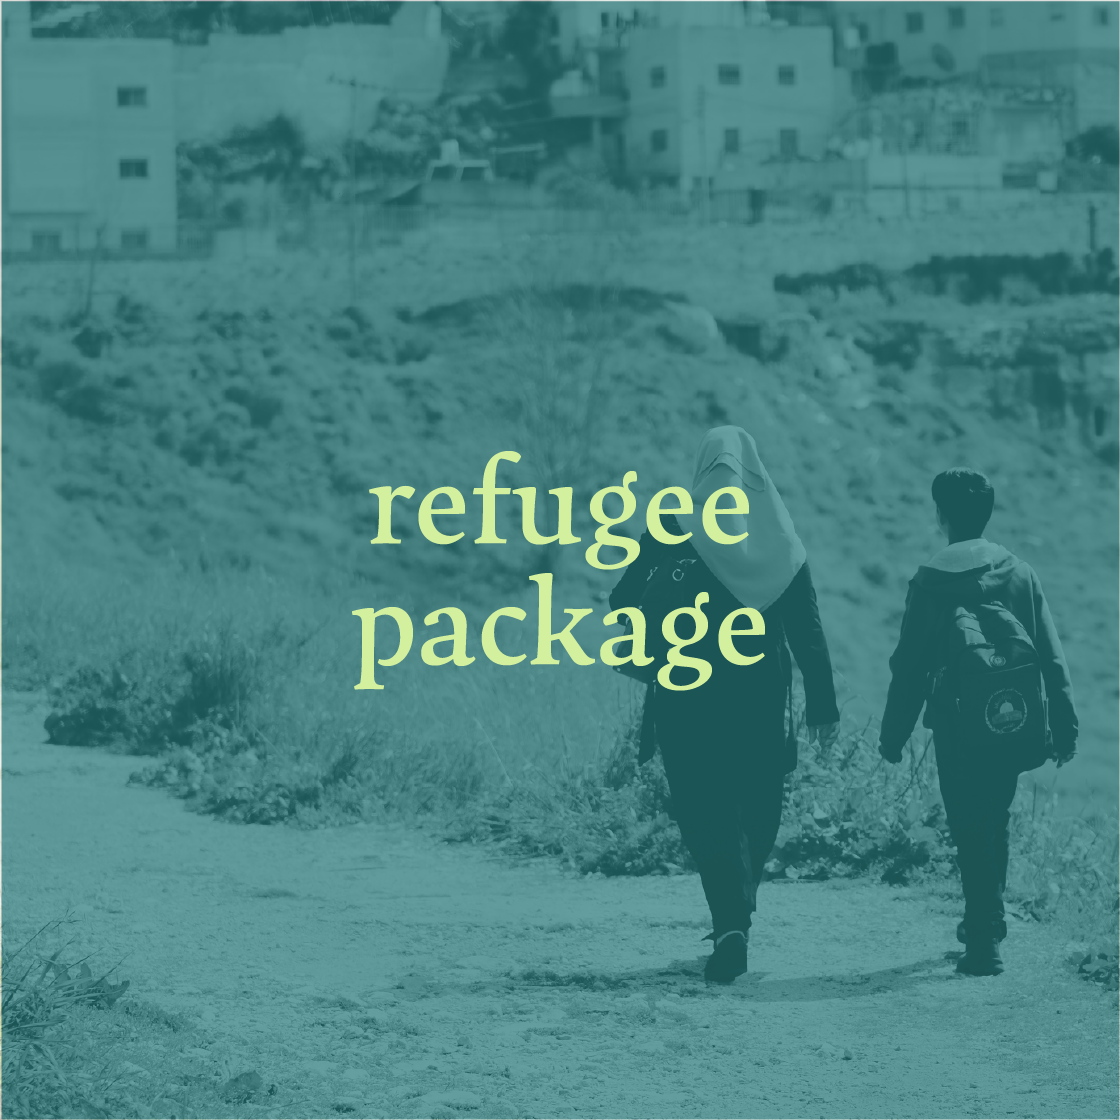 It is not surprising that many refugees want to seek a safe home in your beautiful country. If you are overwhelmed with the crowd, we can help you and make sure that your country benefits from welcoming these people in need.